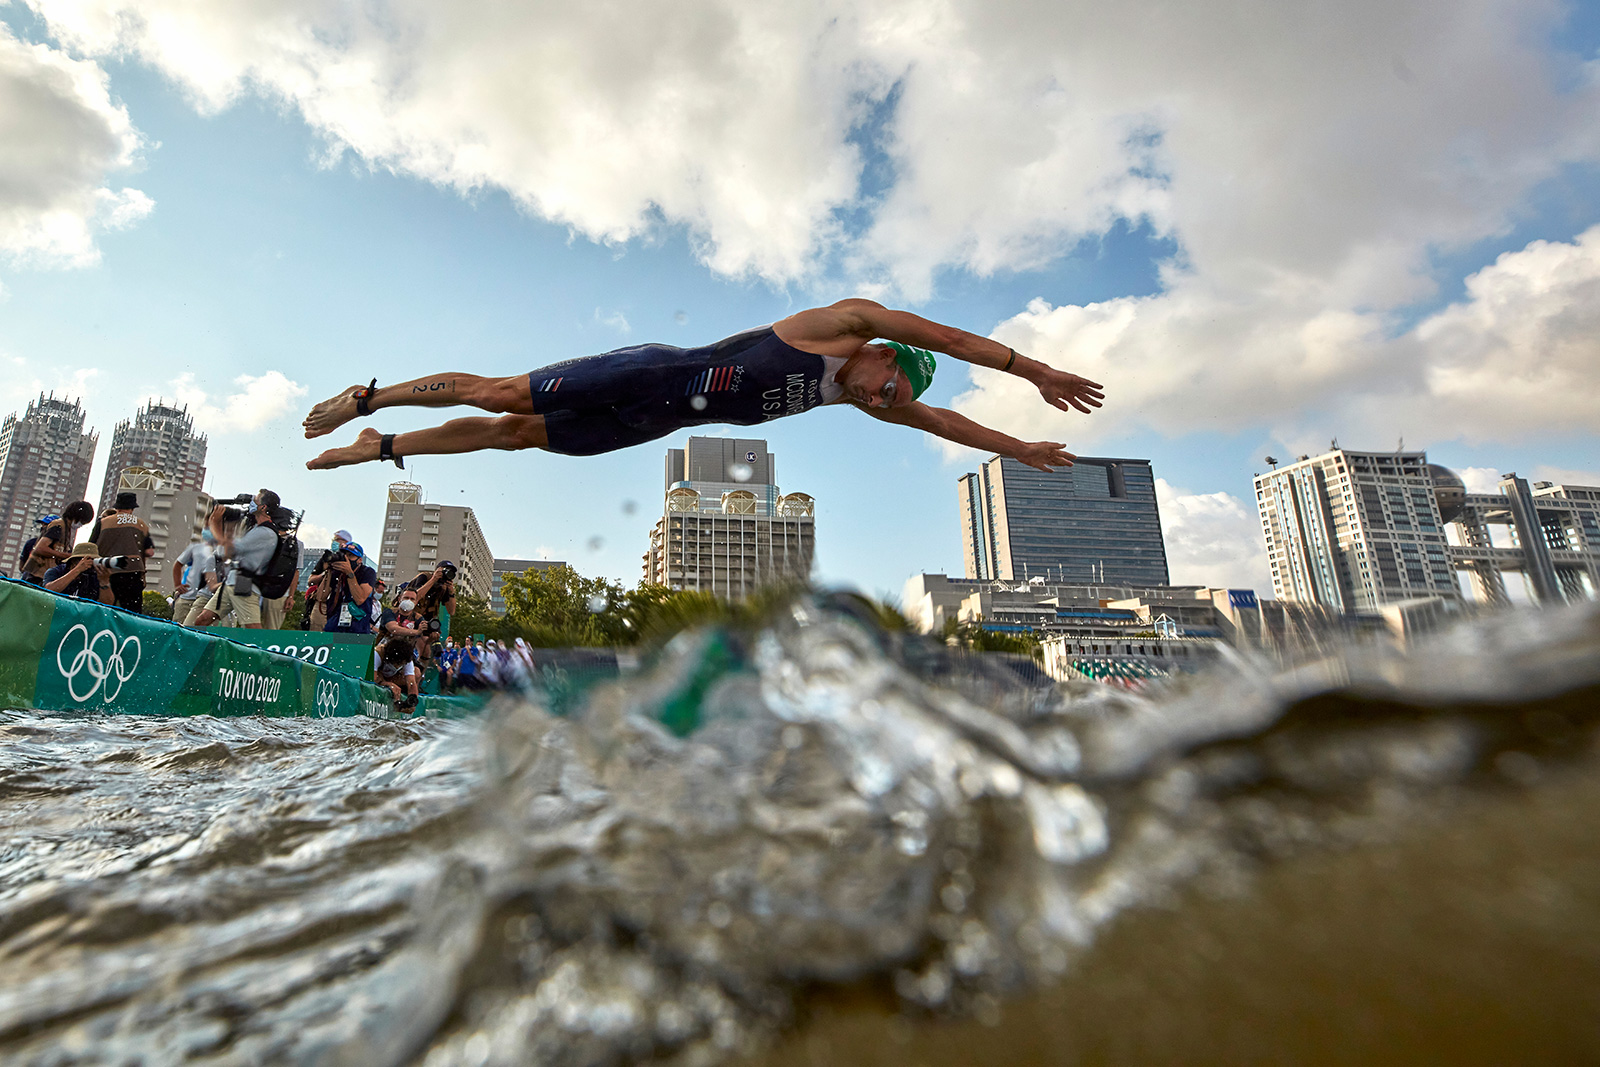 America's Kevin McDowell dives into the water to start the individual triathlon on July 26.